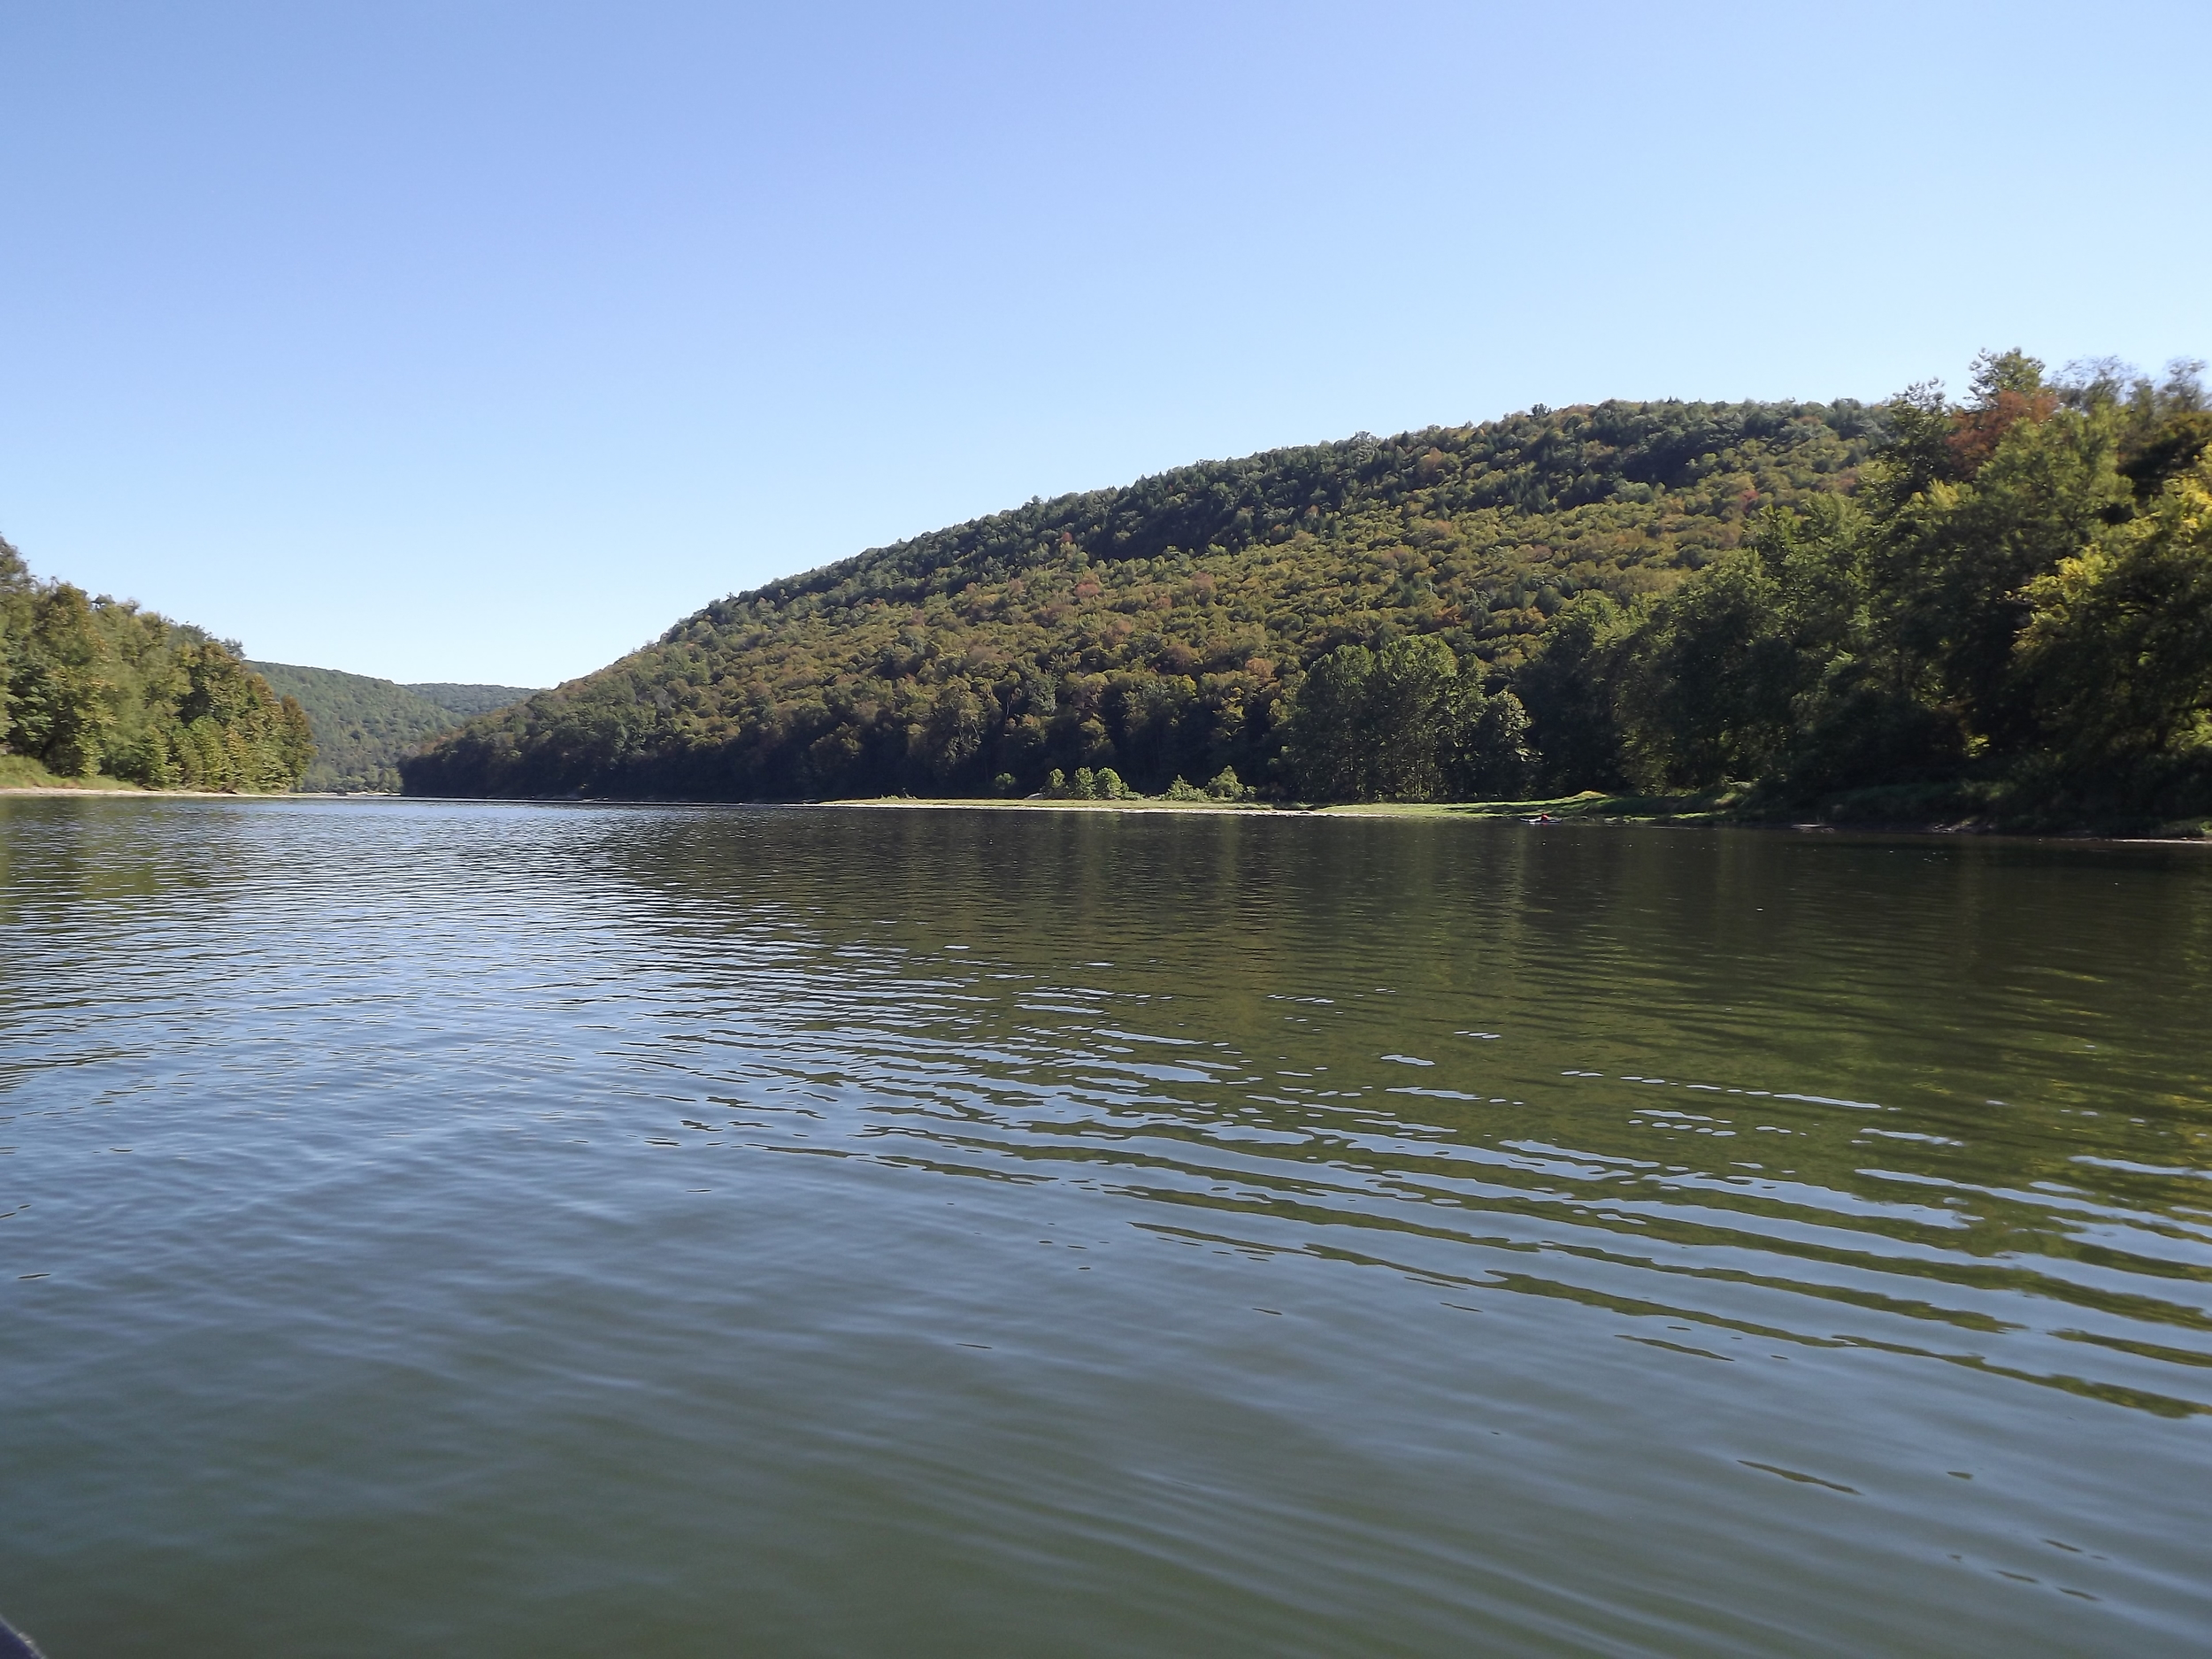 Allegheny River downstream from Kennerdell